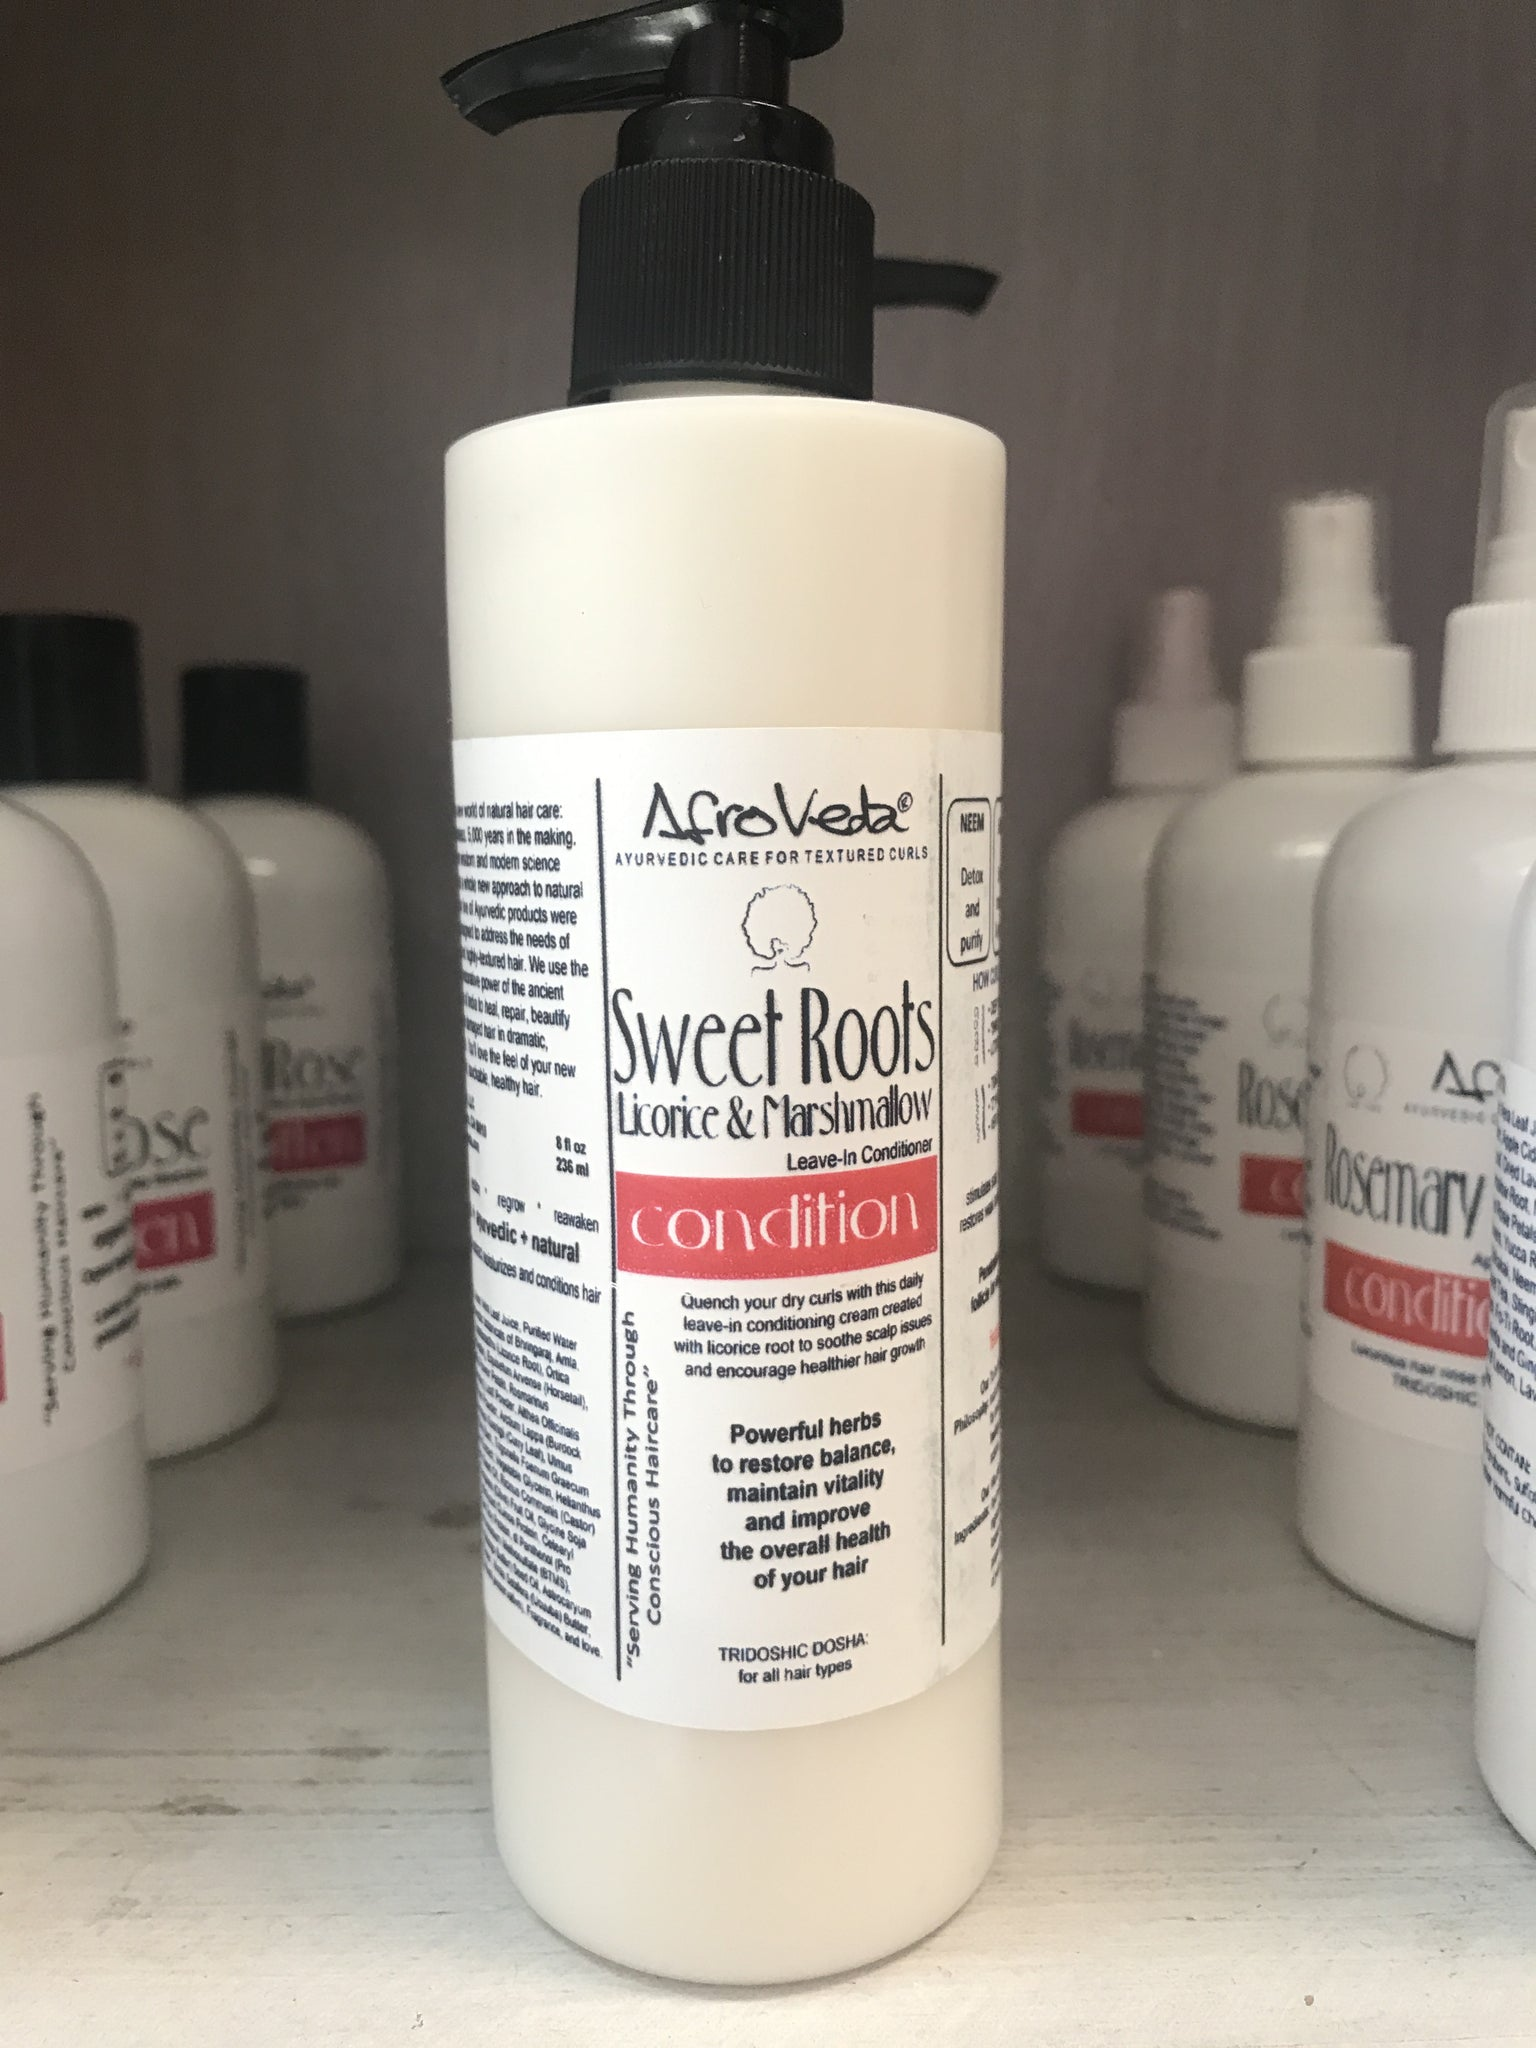 Sweet Roots Licorice & Marshmallow Leave-In Moisturizing Hair Cream